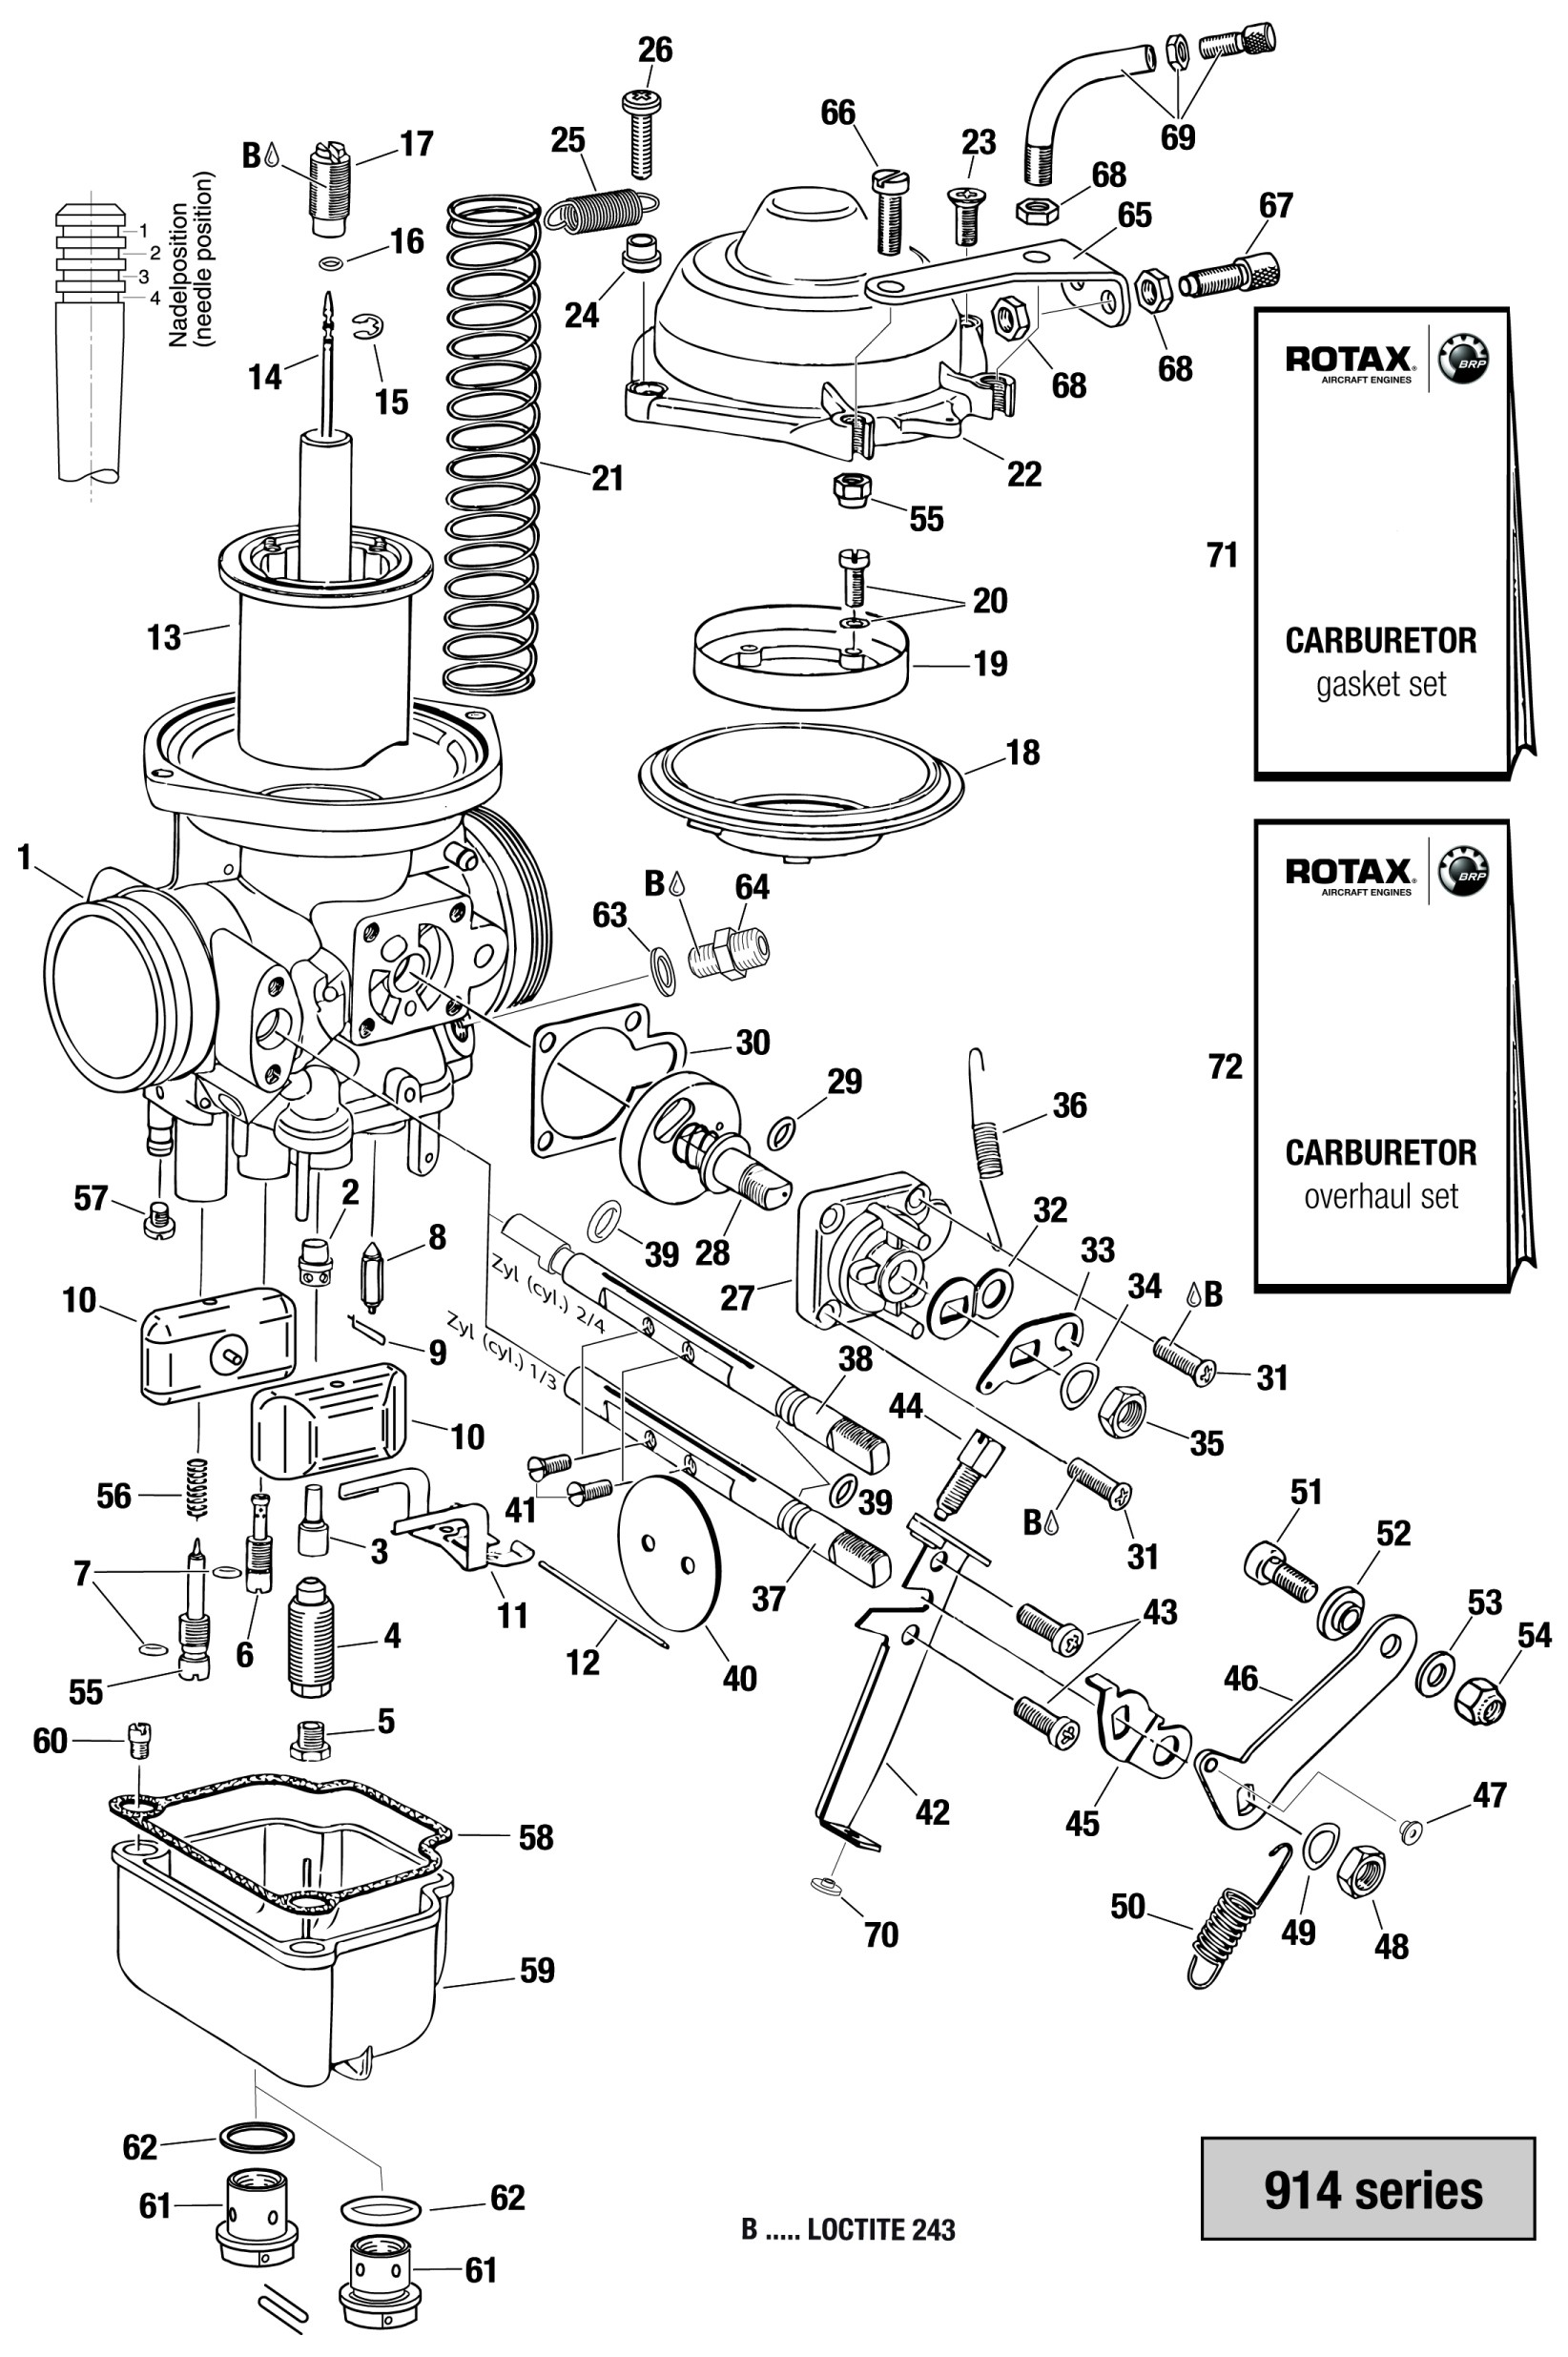 914 Series Carburetor